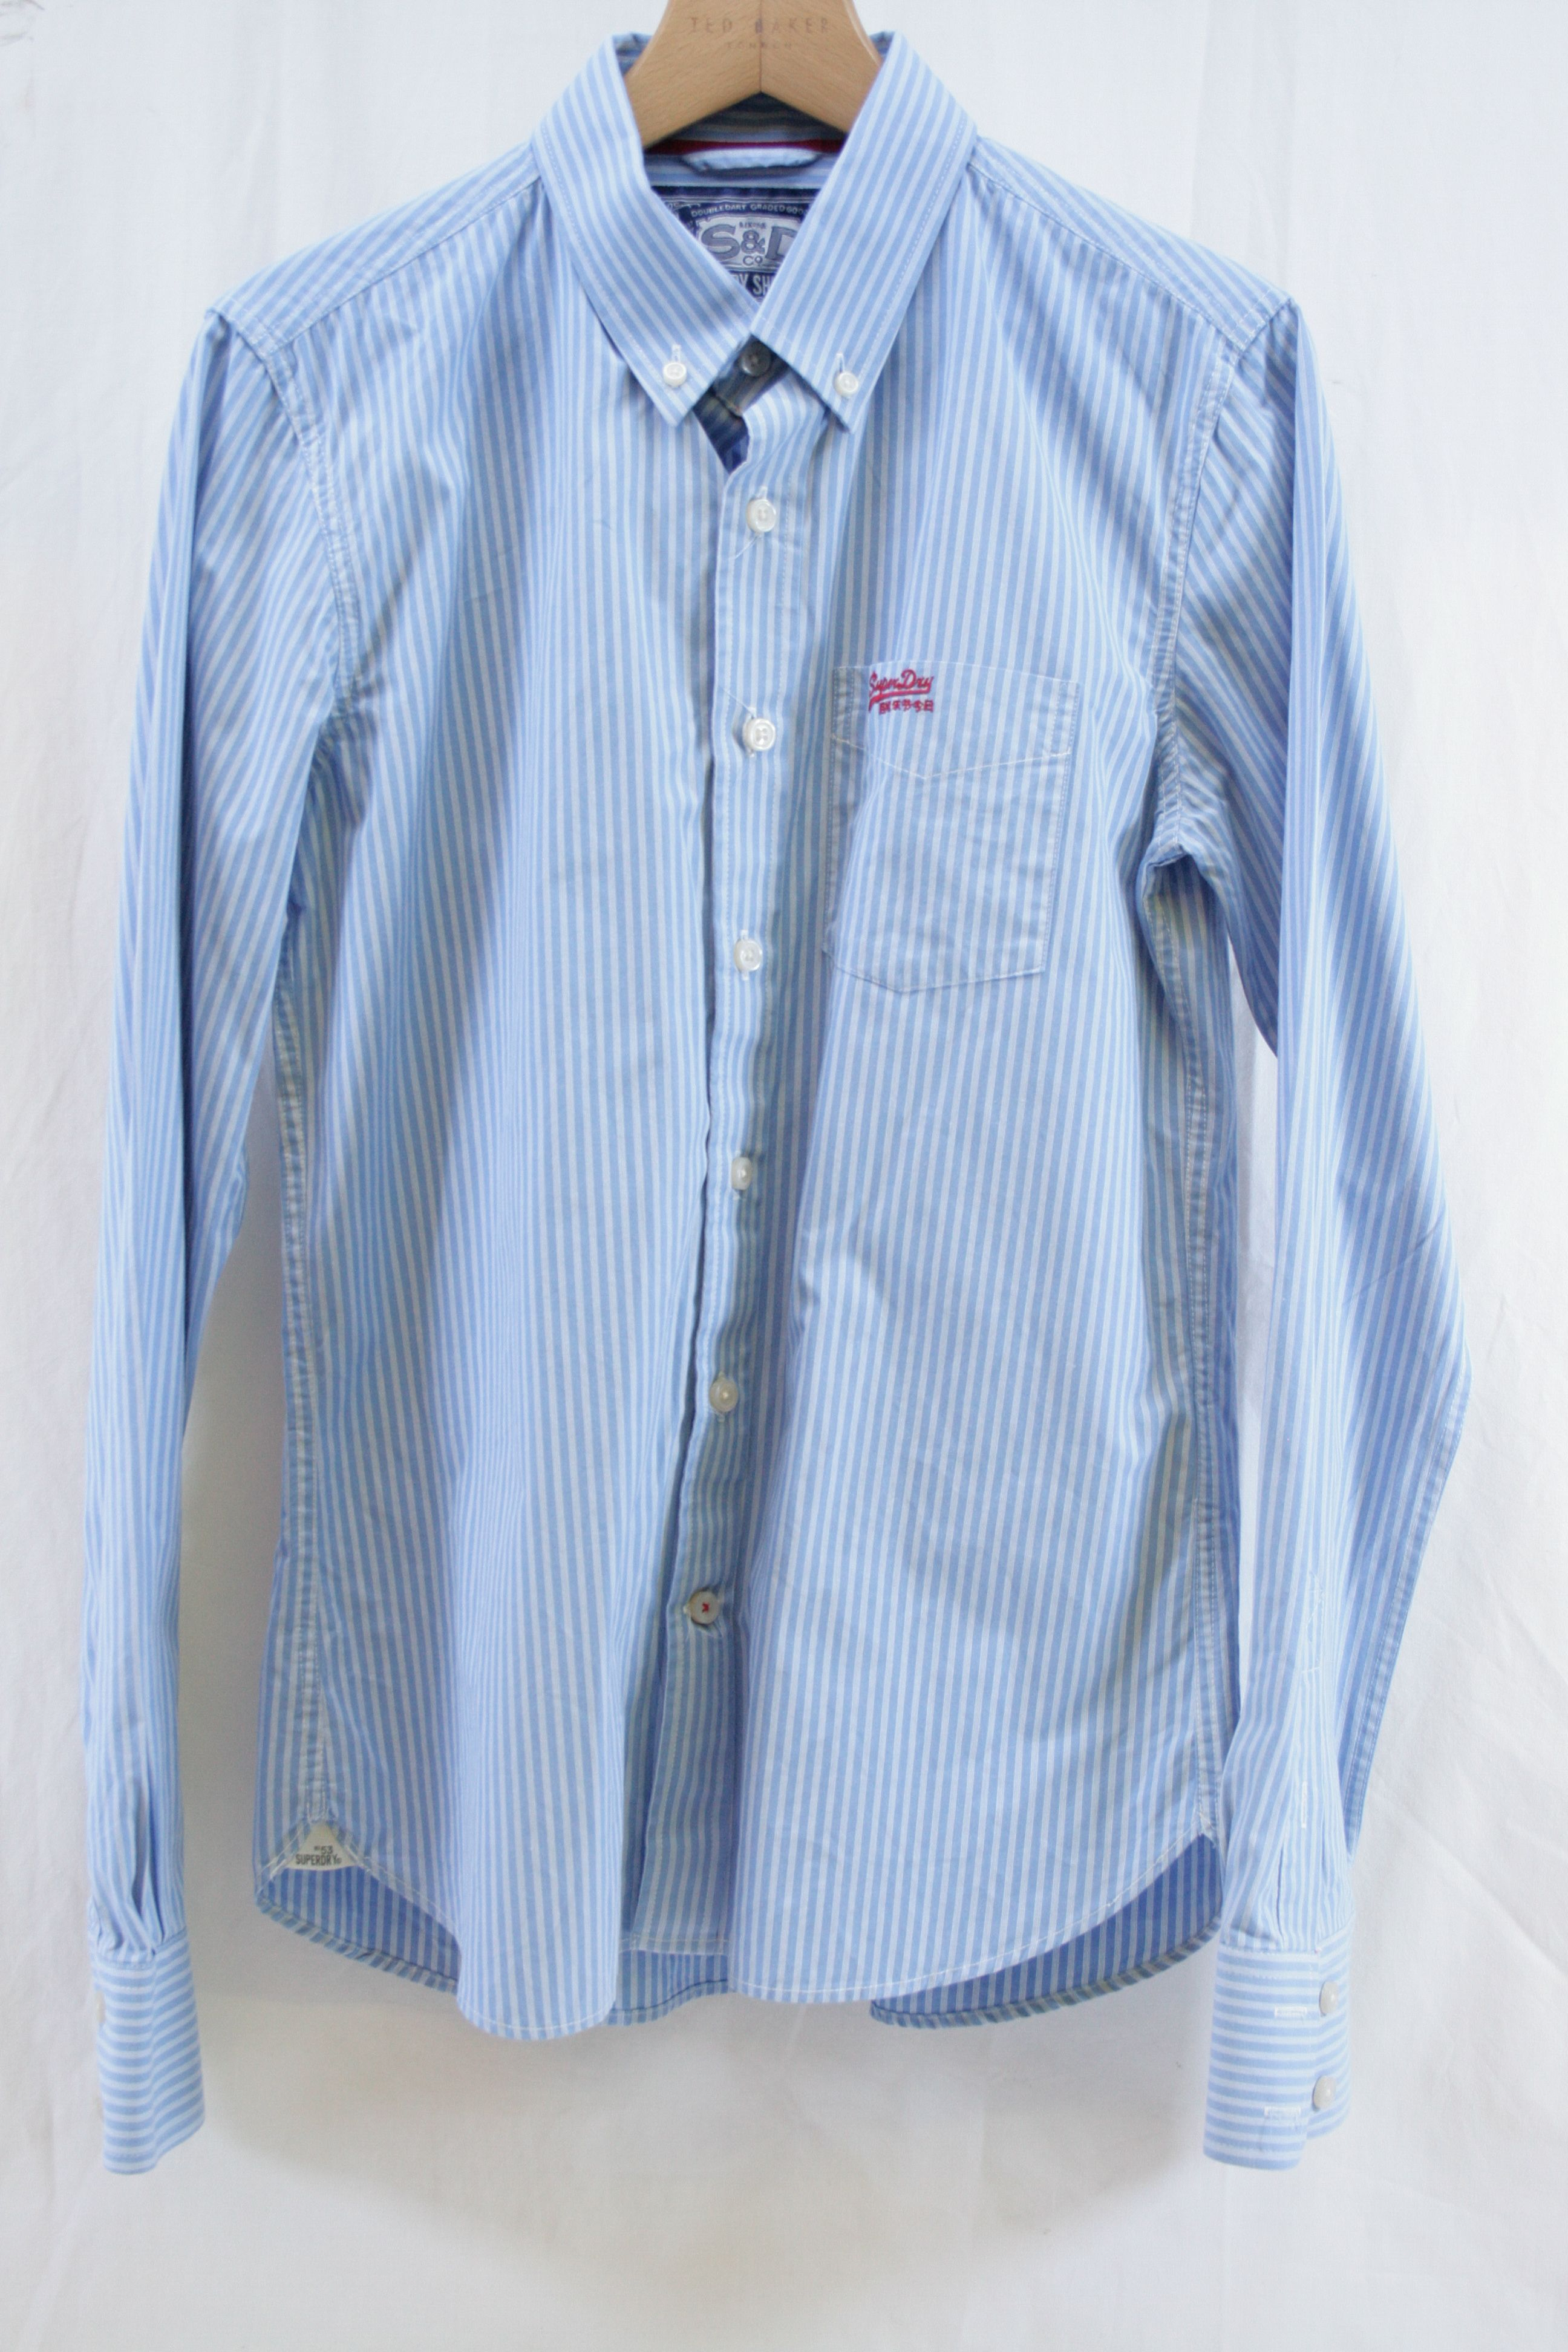 Mens Superdry Pale Blue White Striped Long Sleeve Shirt